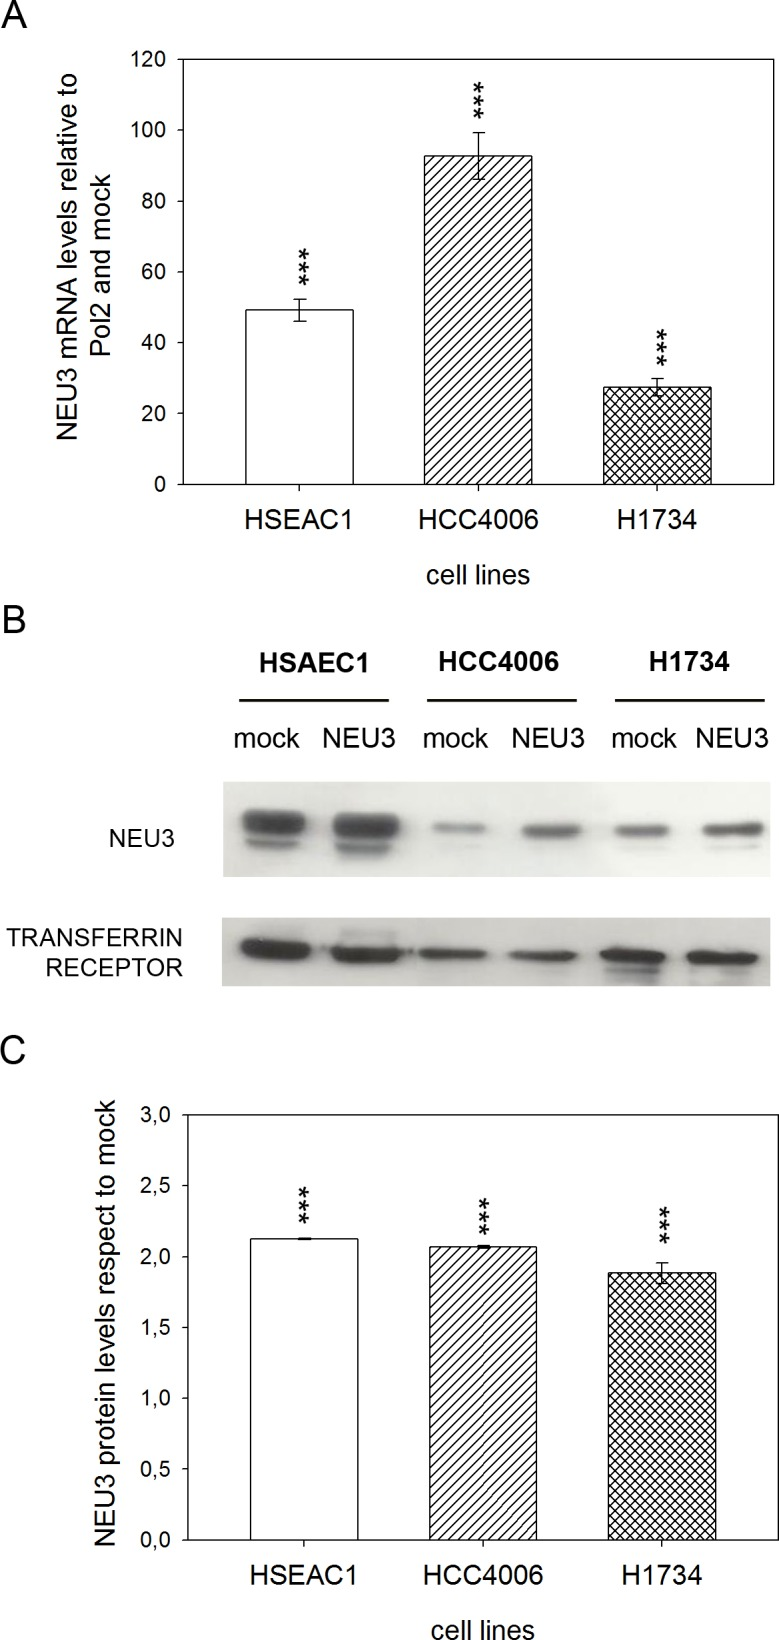 NEU3 transfection evaluation and NEU3 membrane localization. (A) Relative quantification of NEU3 mRNA levels by qPCR on HSAEC1, HCC4006 and H1734 cell lines transfected with either the empty vector (mock) or pcDNA3.1-HsNEU3. (B) Representative Western-blot analyses performed on membrane fractions. Proteins were separated on a 10% SDS-PAGE and probed with anti-NEU3 antibody. Transferrin receptor was used as a membrane marker. The experiments were performed in quadruplicate. (C) Densitometric analysis was performed with Scion Image Software. Values are expressed by comparing the data obtained after transfection with pcDNA3.1-HsNEU3 with those obtained after transfection with the empty vector (mock). Values are presented as means ± standard error (SE). ***p